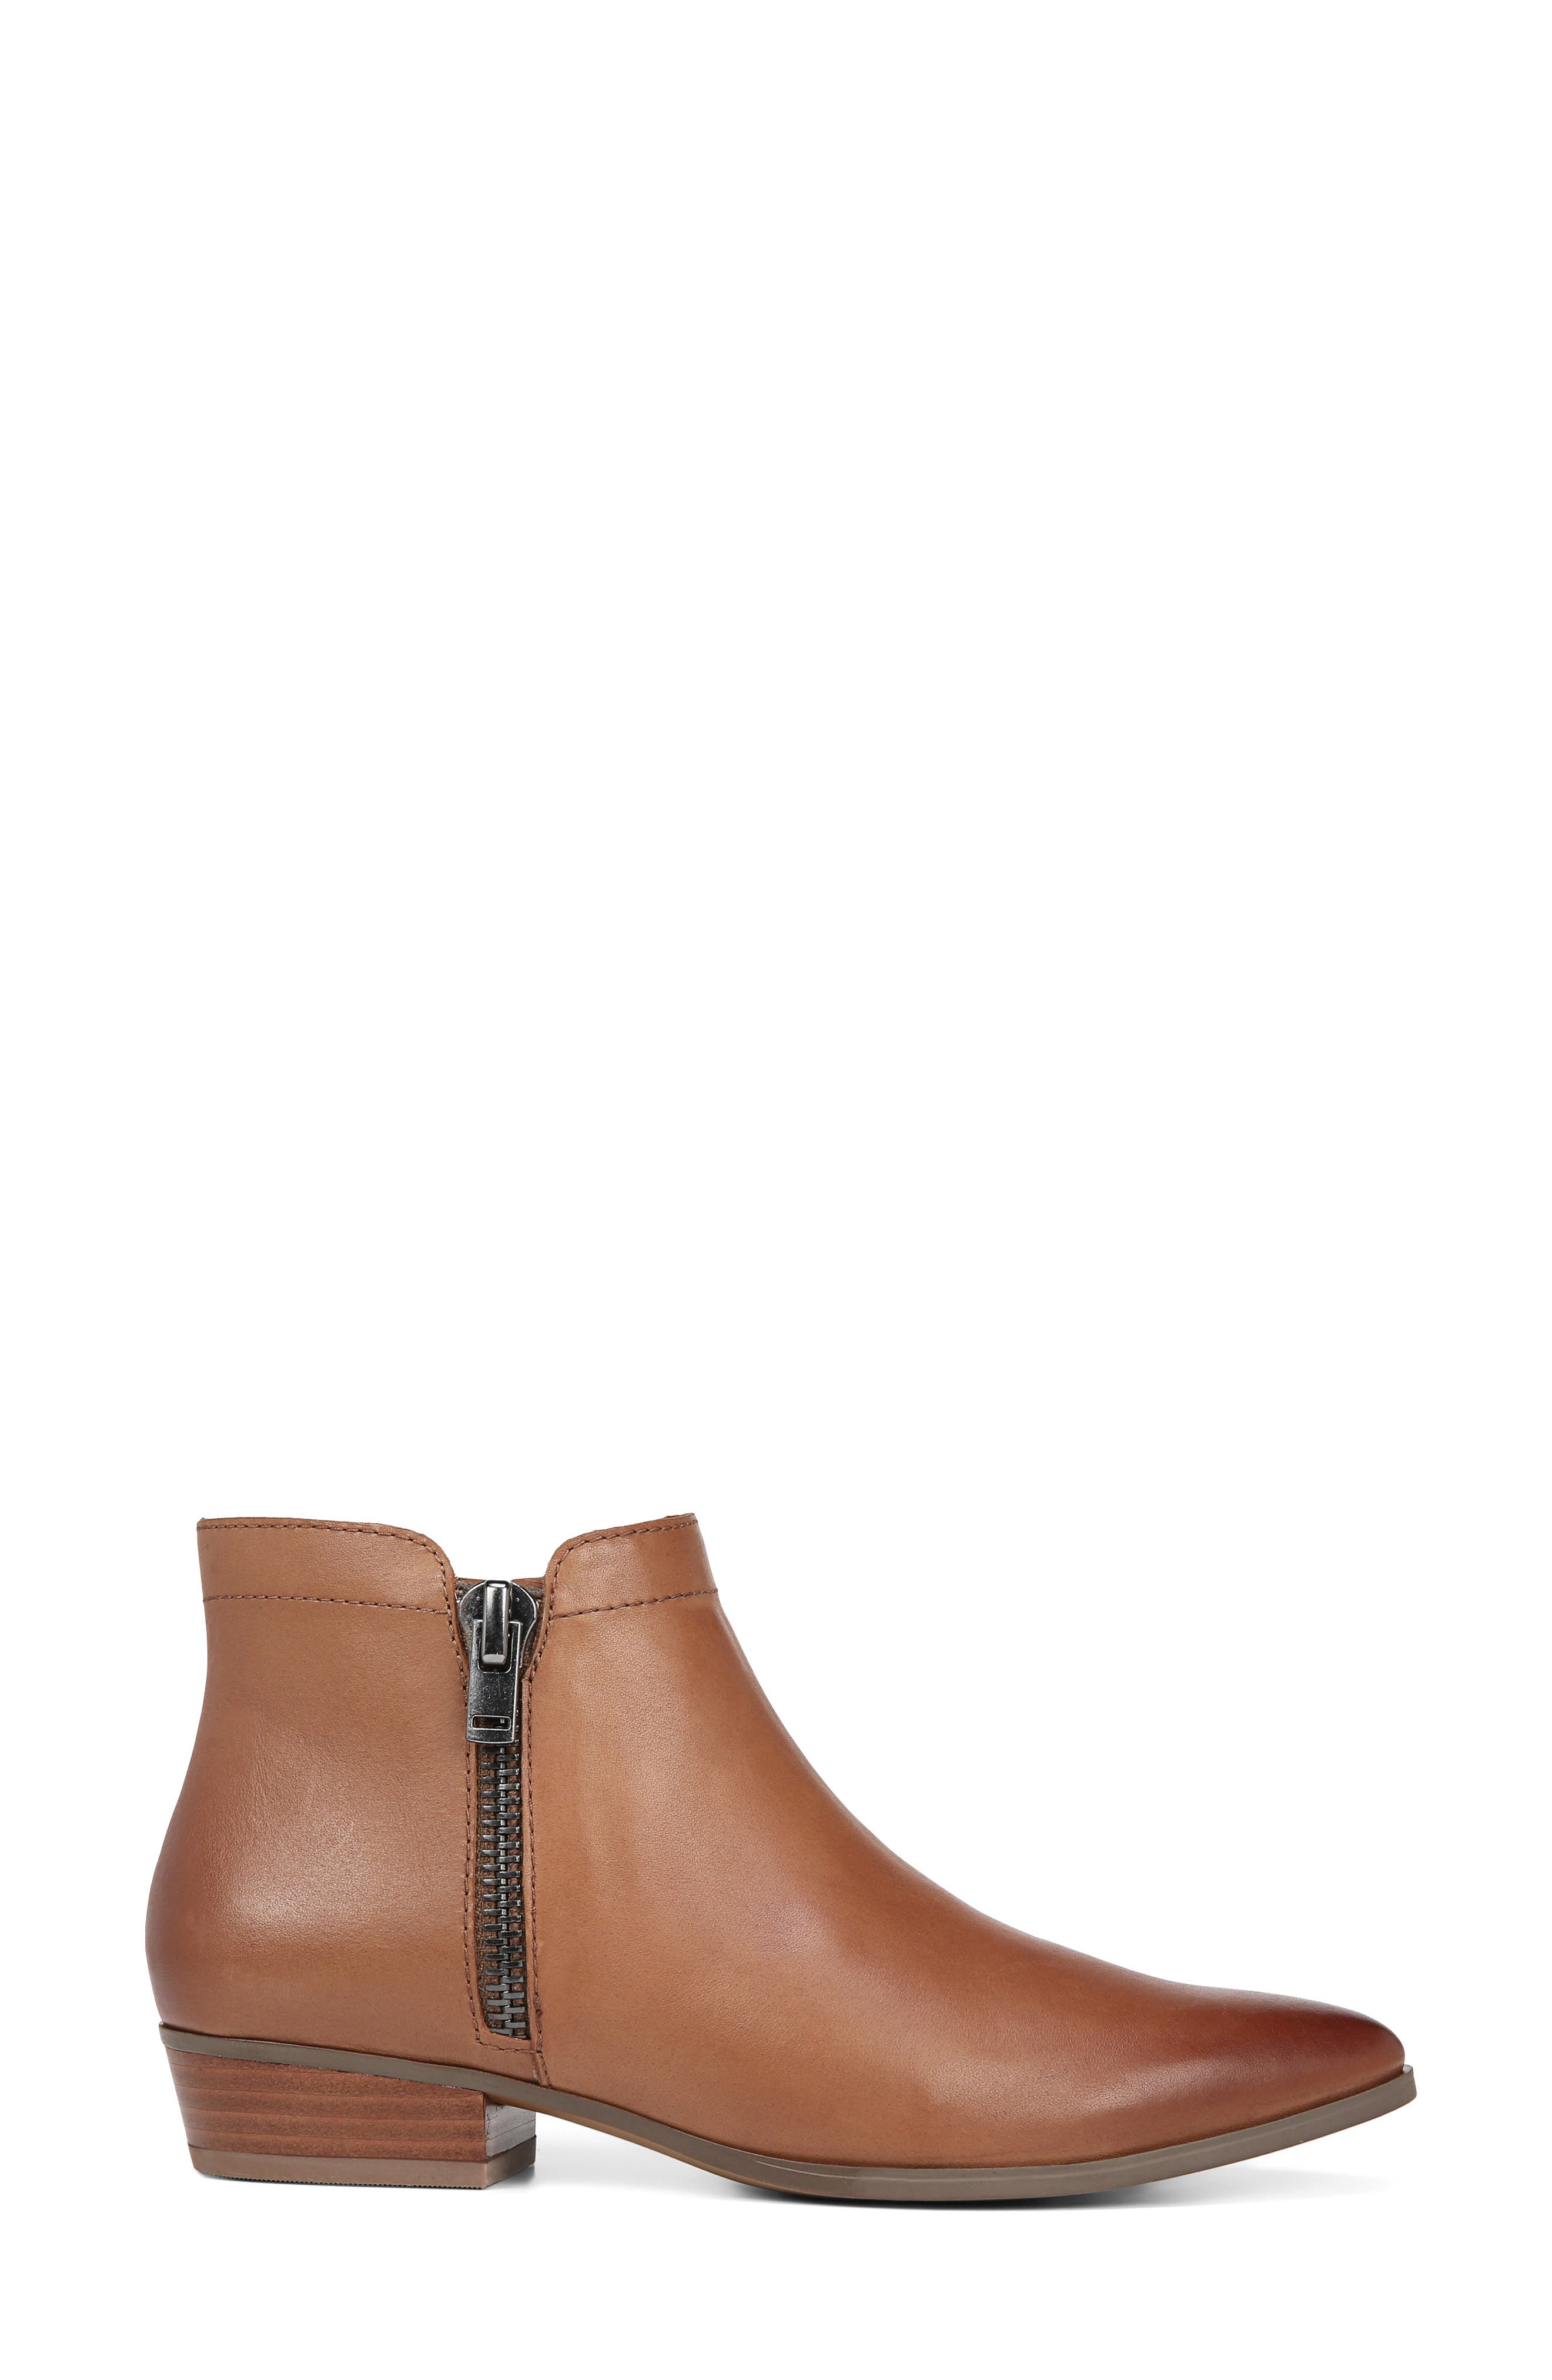 NATURALIZER, Blair Bootie, Alternate thumbnail 3, color, BANANA BREAD LEATHER